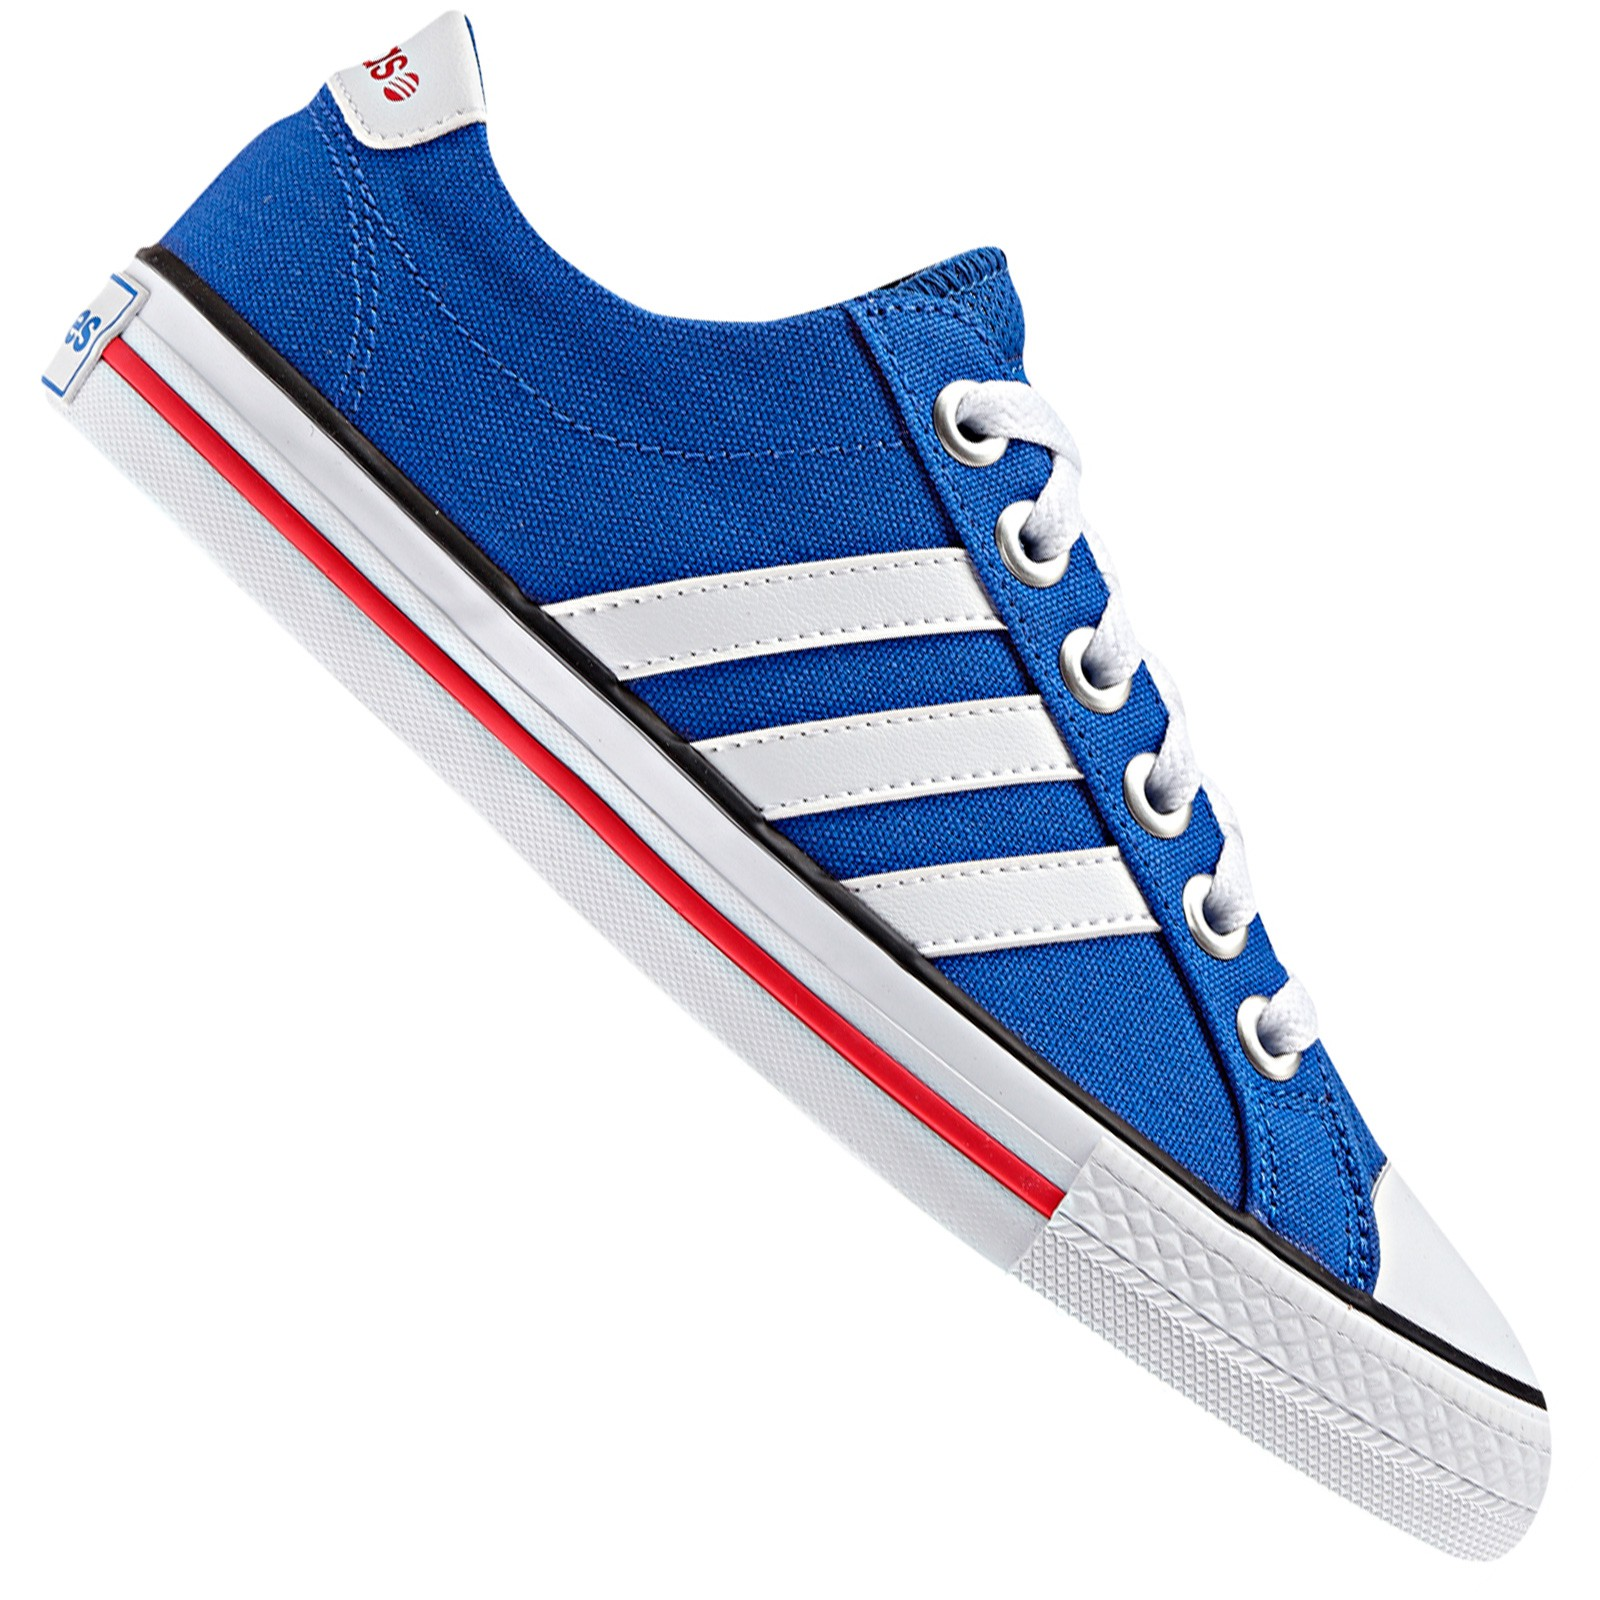 Details about Adidas Neo Label Canvas Vl 3 Stripes Derby Trainers Lifestyle  Shoes Blue White ed5aeaae162a